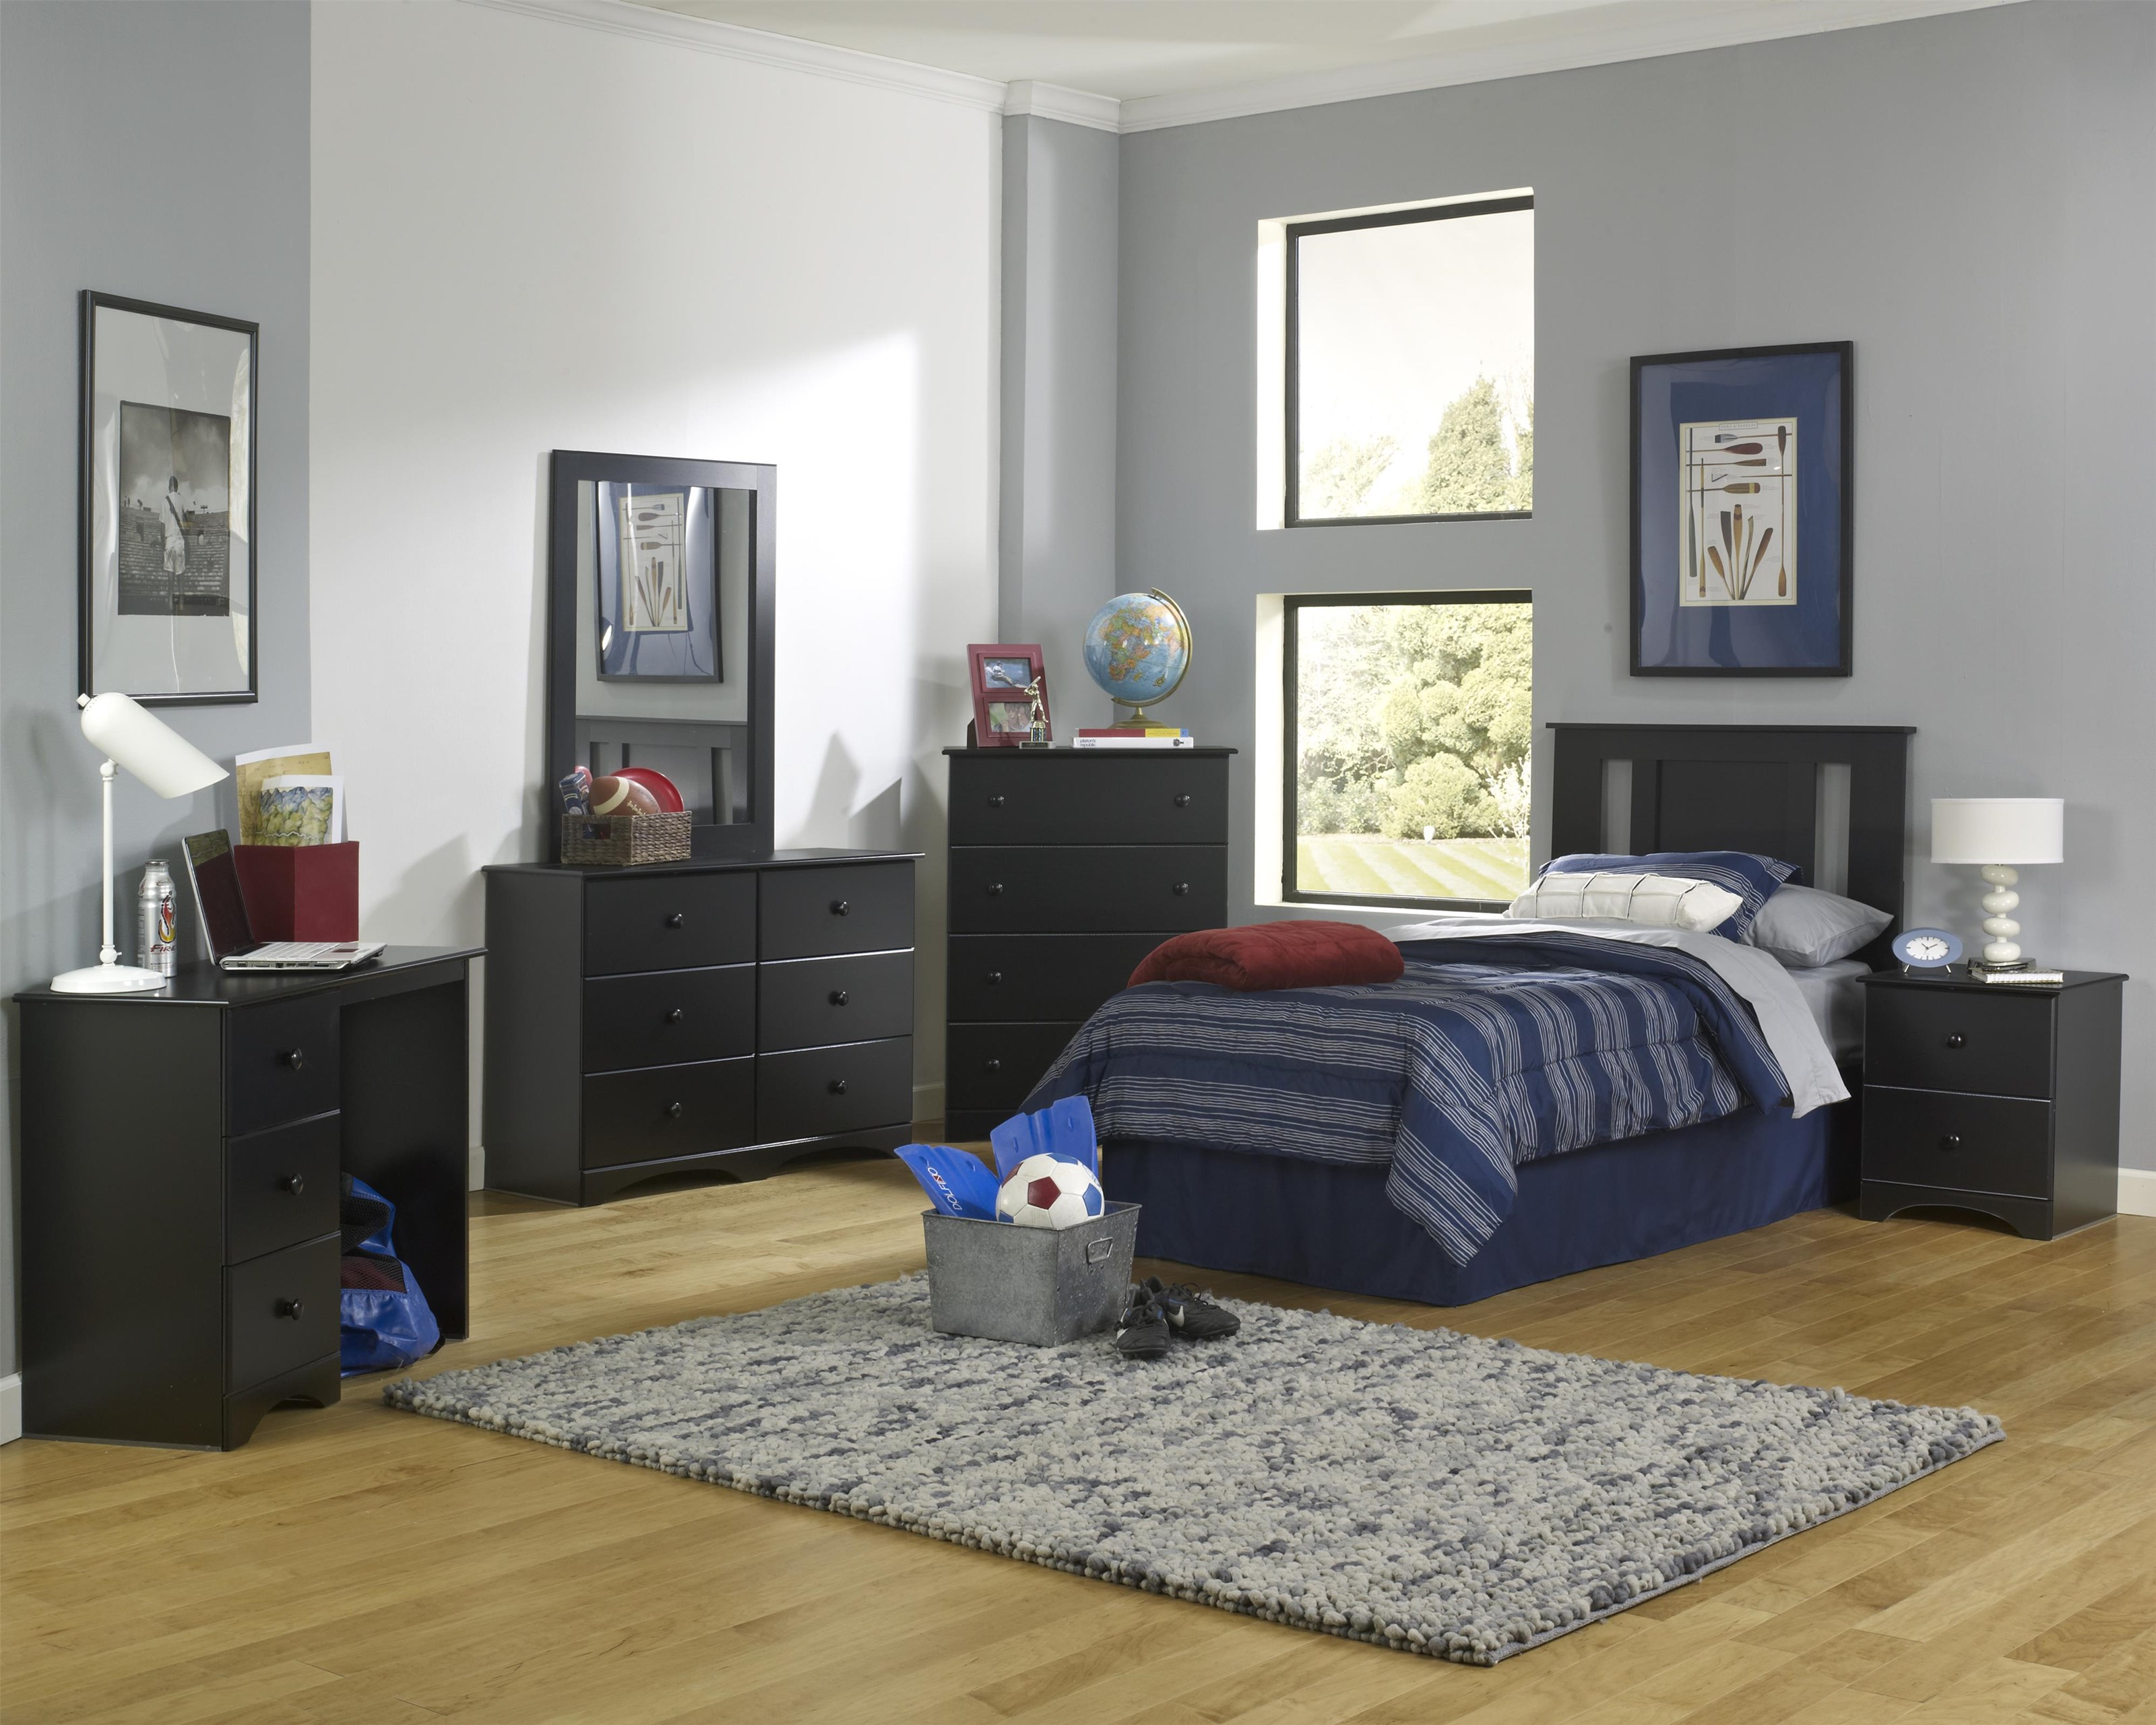 5000 Series Full Panel Headboard Package by Perdue at Sam Levitz Outlet